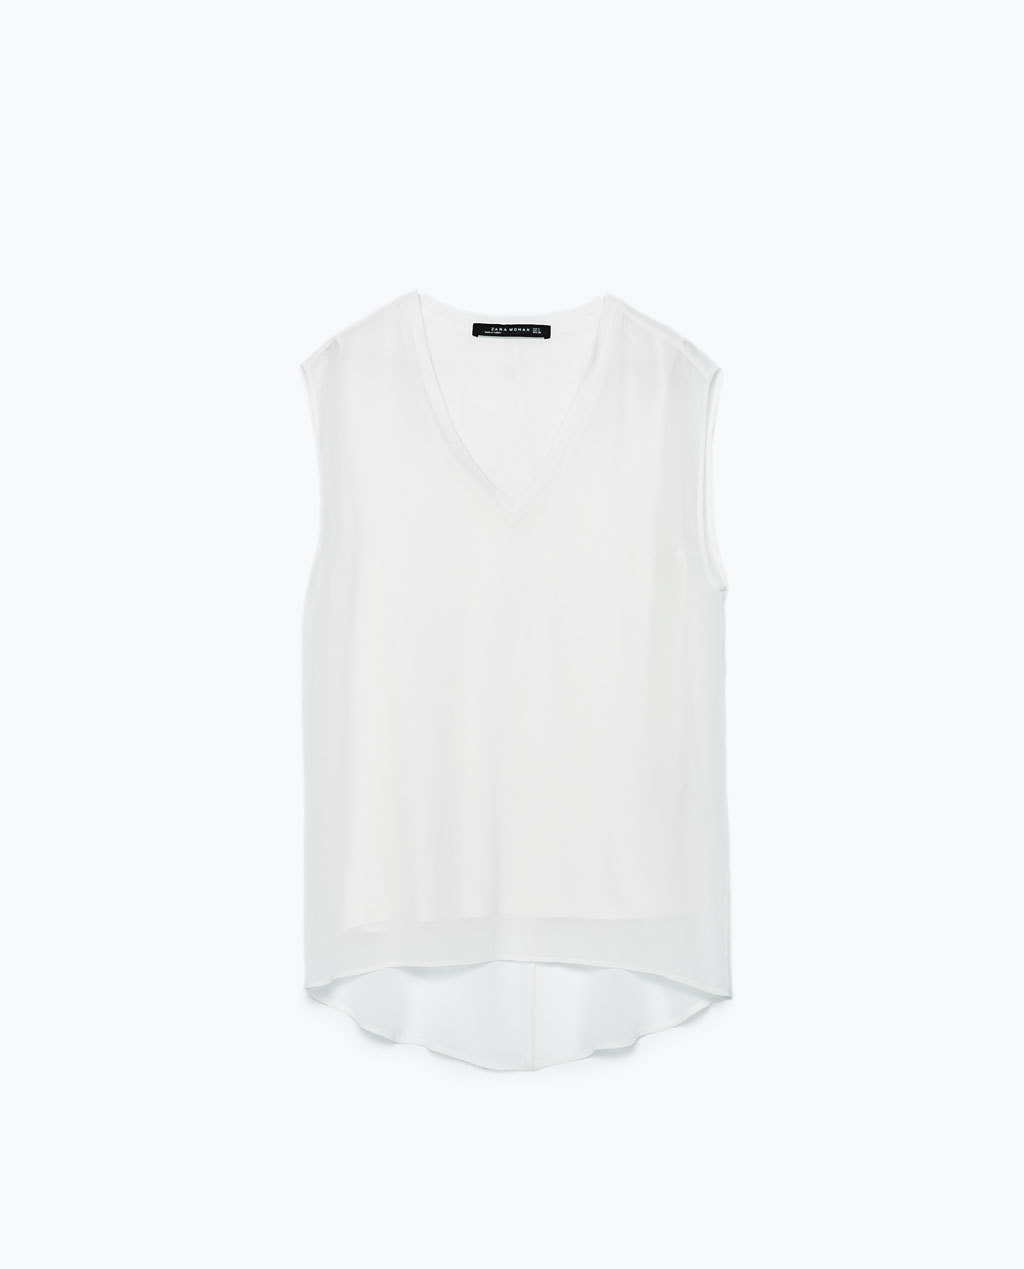 Top With Ribbed Neckline - neckline: v-neck; pattern: plain; sleeve style: sleeveless; style: t-shirt; predominant colour: ivory/cream; occasions: casual, evening, creative work; length: standard; fibres: polyester/polyamide - 100%; fit: straight cut; sleeve length: sleeveless; texture group: crepes; pattern type: fabric; season: s/s 2015; wardrobe: basic